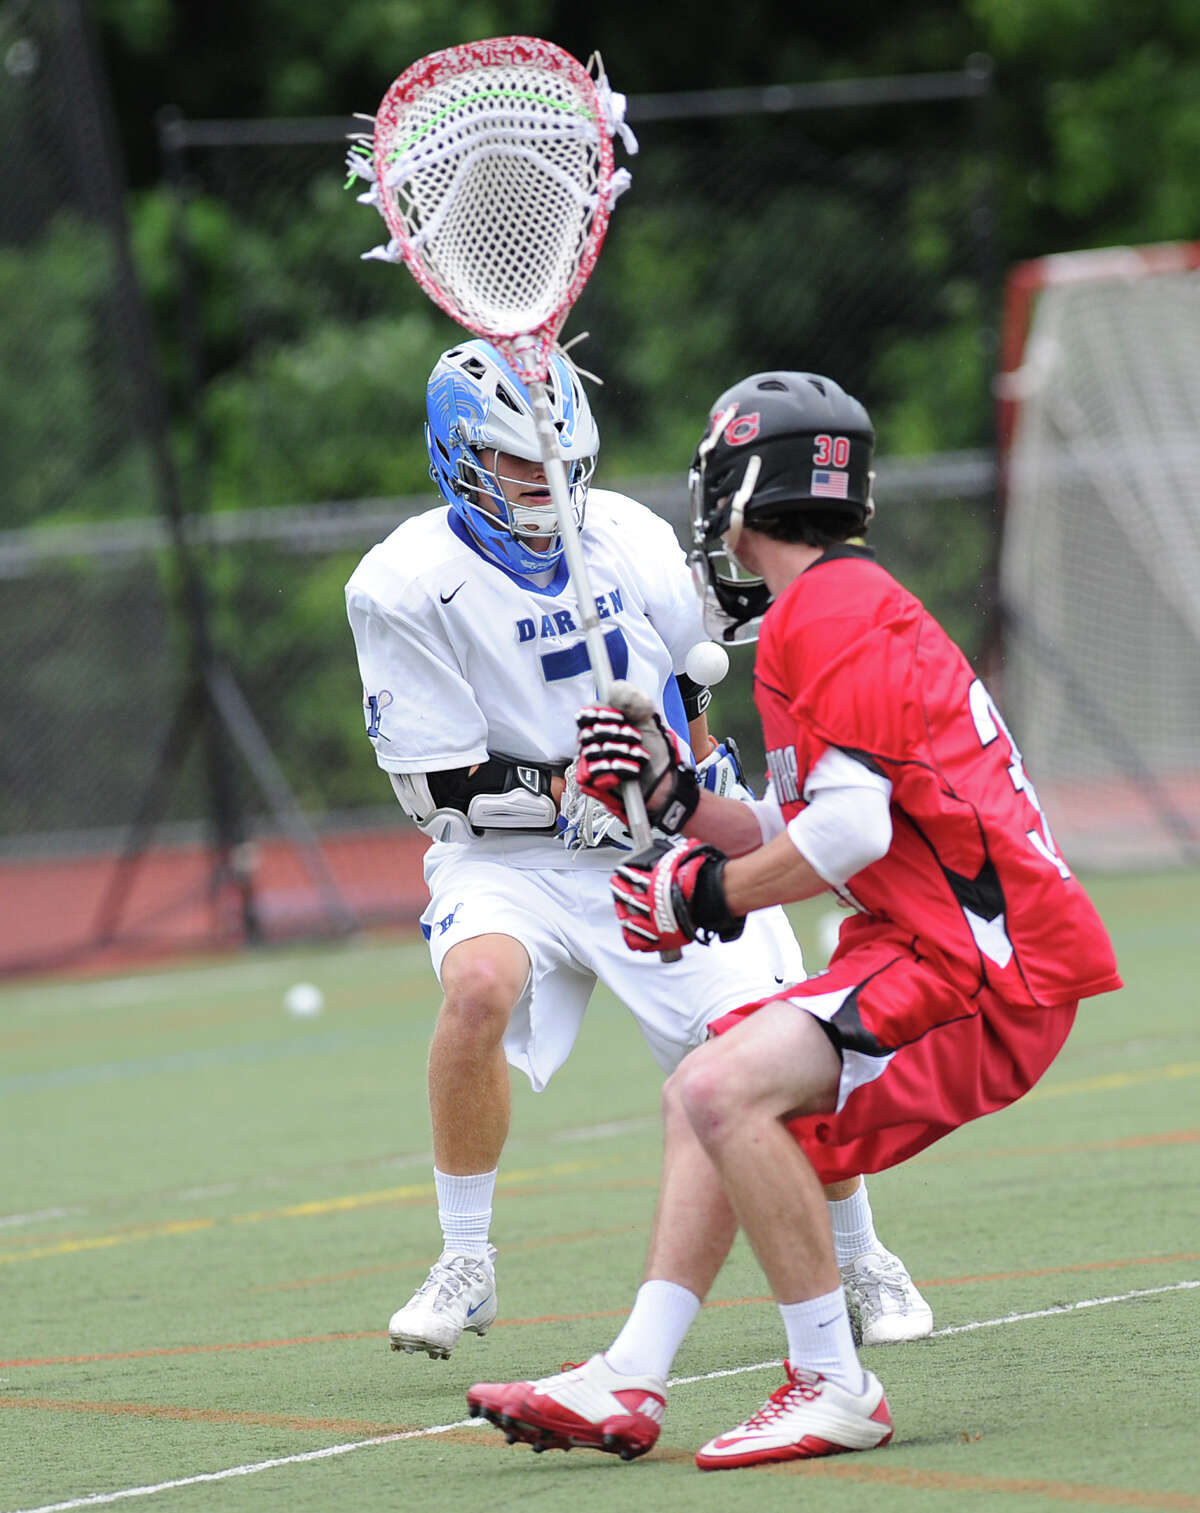 Goalie Thomas Carey, right, of New Canaan challenges John Reed of Darien for the ball during the Class M Boys Lacrosse championship game between Darien High School and New Canaan High School at Brien McMahon Hgh School in Norwalk, Saturday, June 9, 2012. Darien won the championship 11-5.